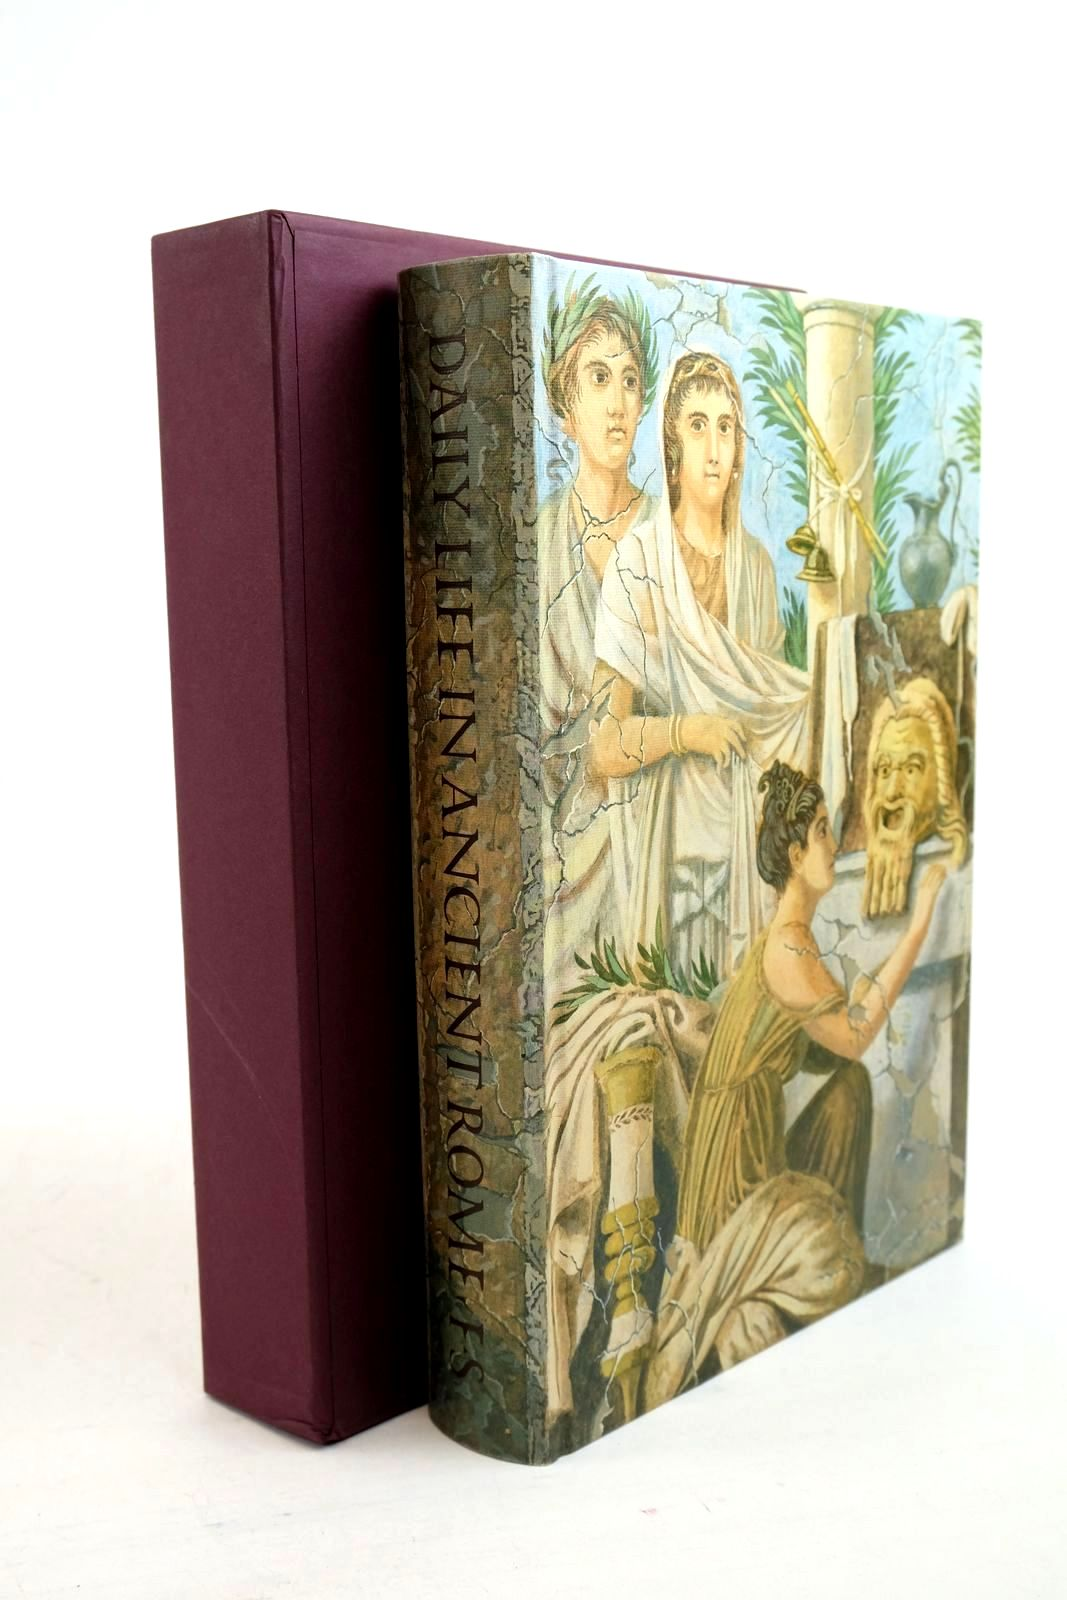 Photo of DAILY LIFE IN ANCIENT ROME written by Carcopino, Jerome Rowell, Henry T. Lorimer, E.O. published by Folio Society (STOCK CODE: 1321295)  for sale by Stella & Rose's Books